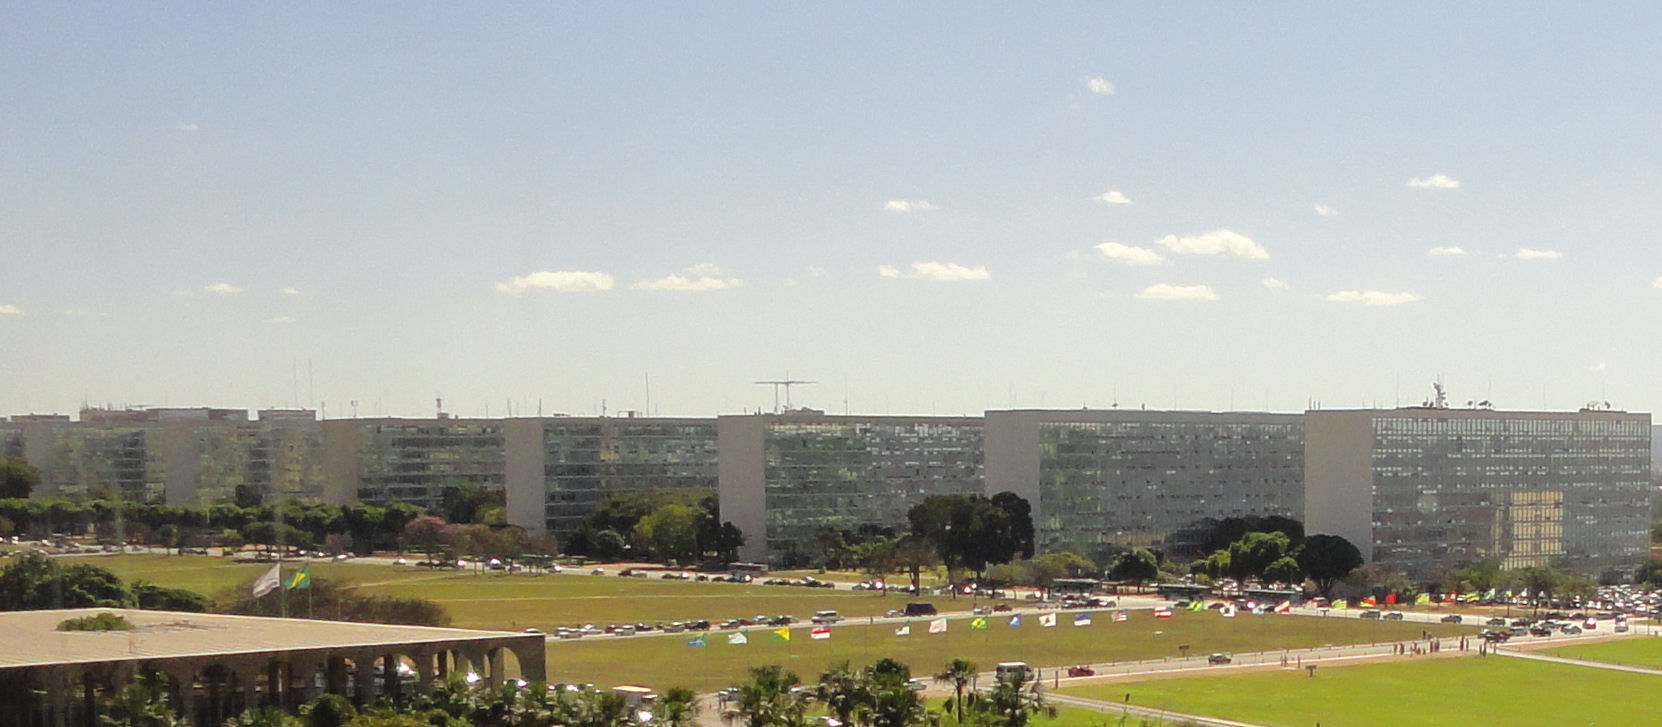 Ministries in Brasilia